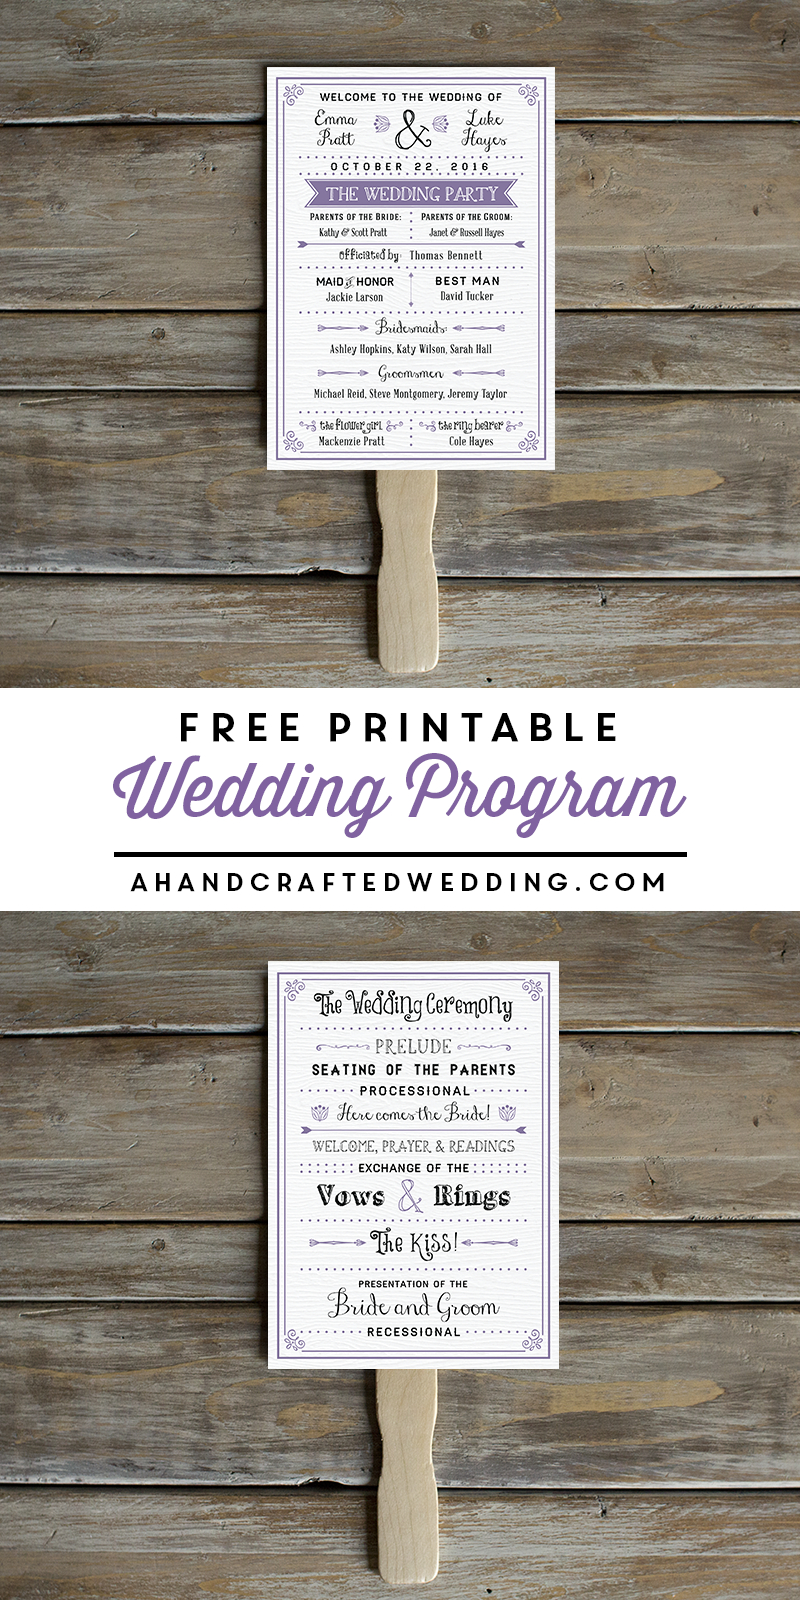 Free Printable Wedding Program | Crafty 2 The Core~Diy Galore - Free Printable Wedding Programs